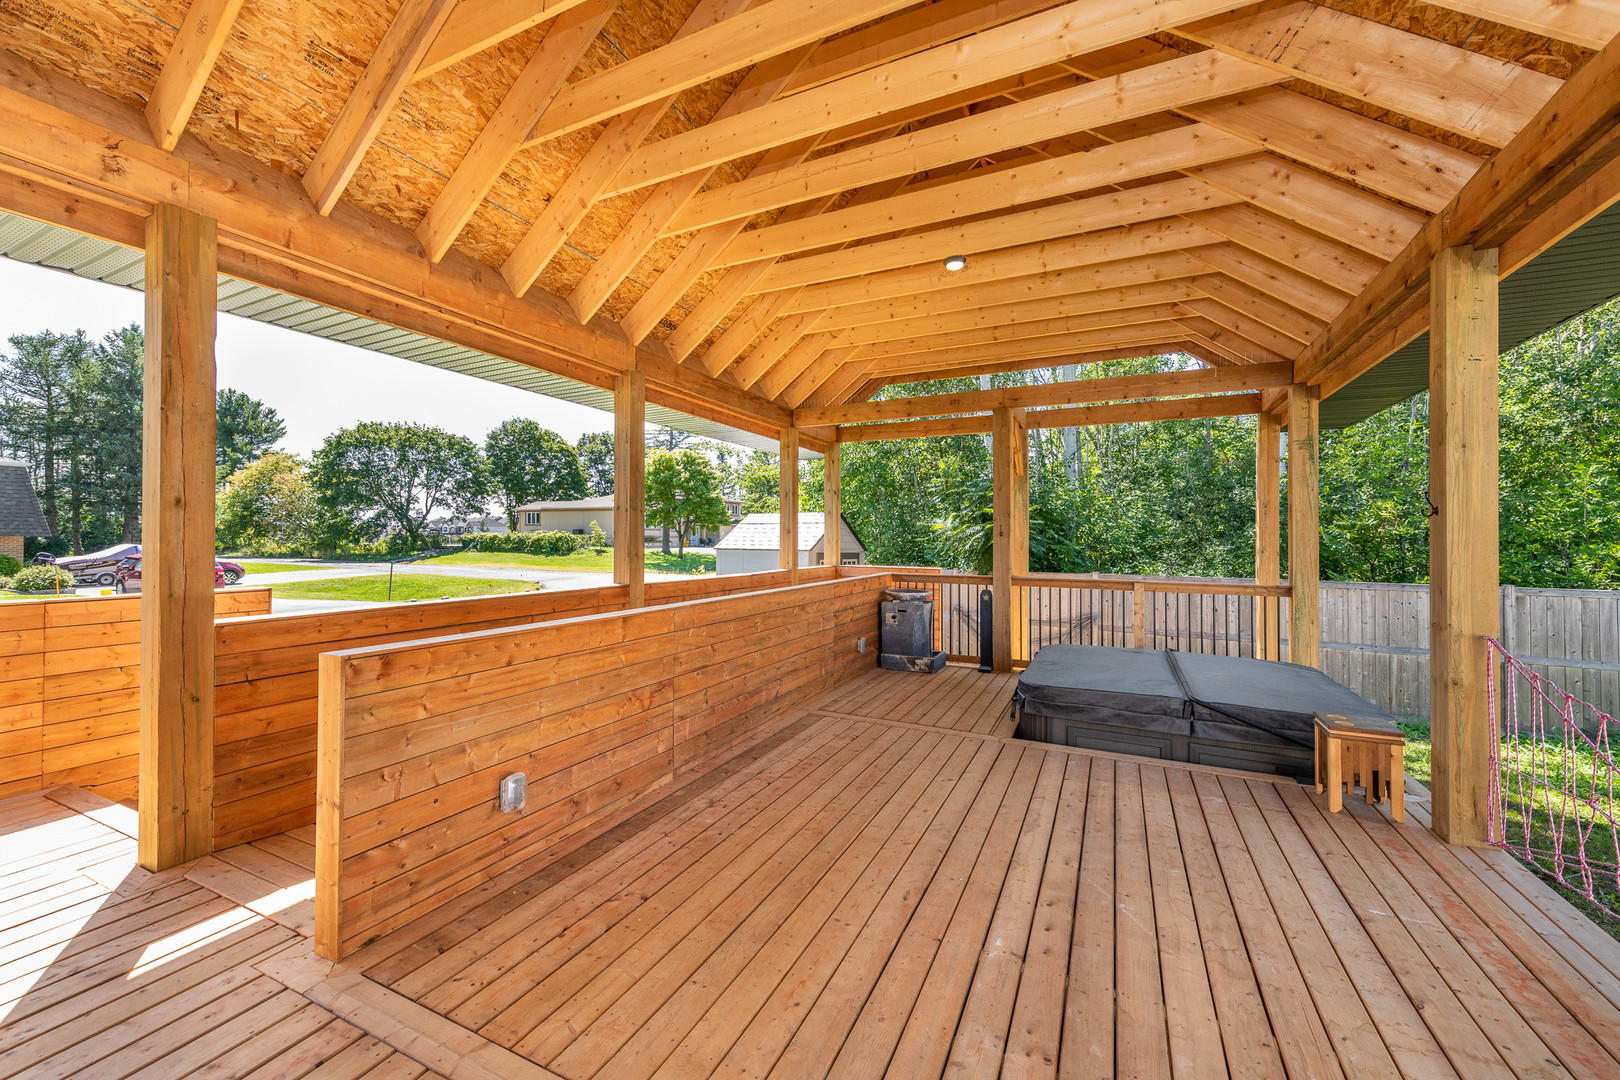 Custom deck addition, ramp and therapeutic hot tub